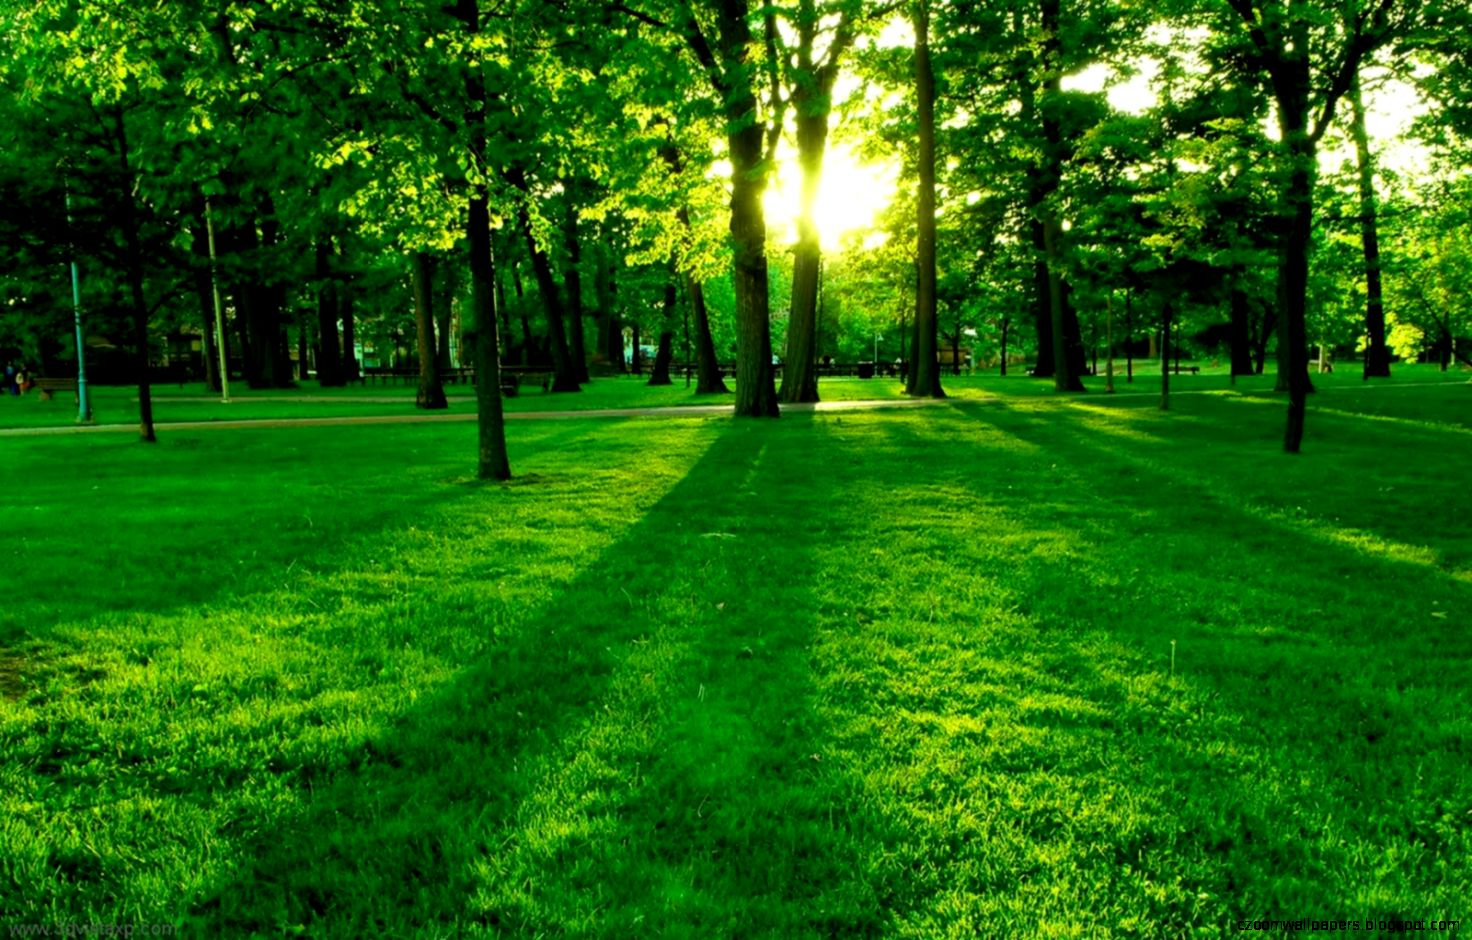 Green Nature Tree Backgrounds Wallpaper Hd Fre 4529 Wallpaper